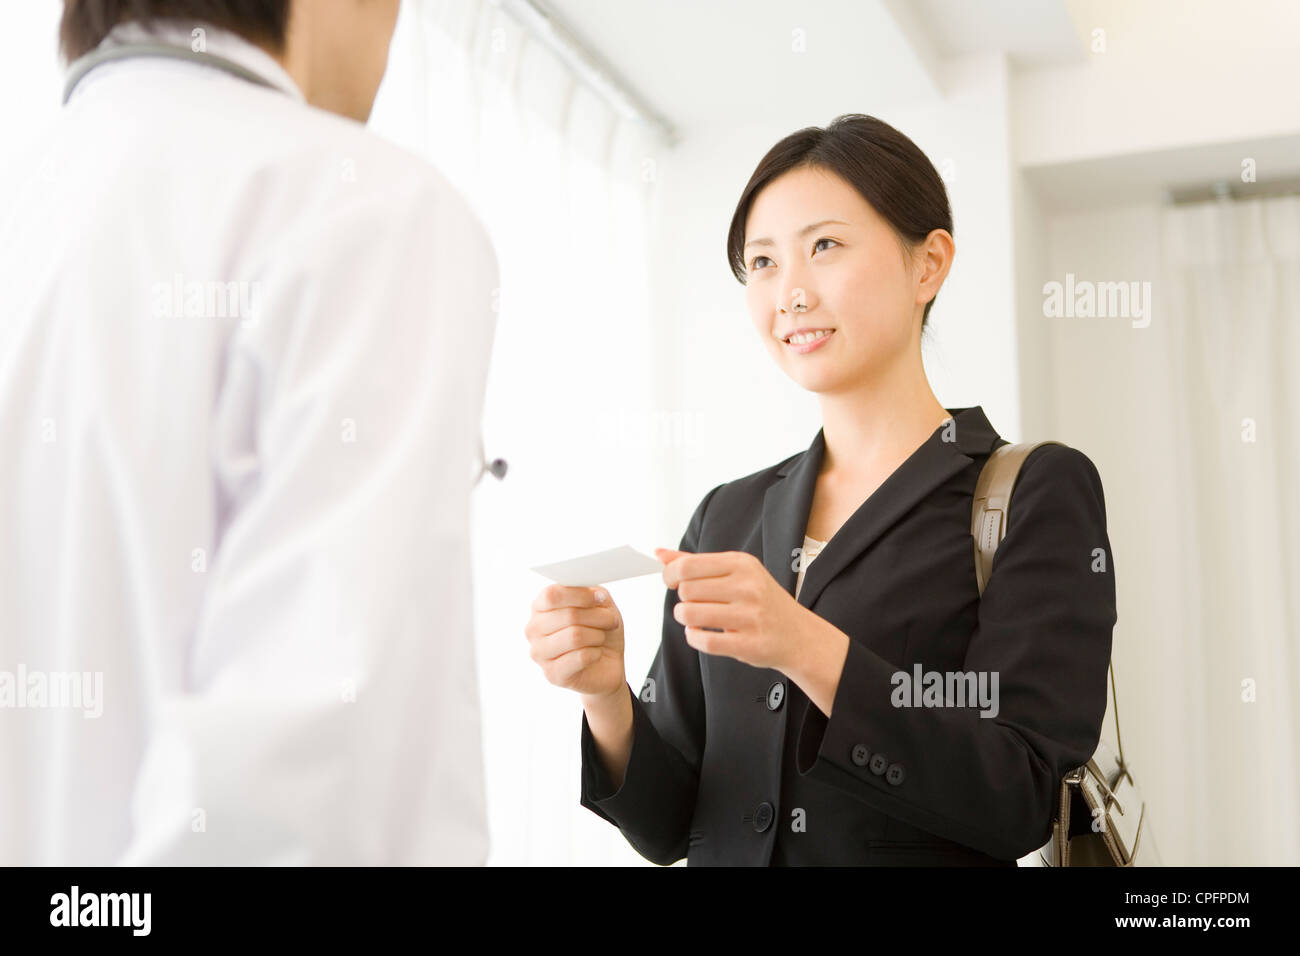 pharmaceutical representative stock photos pharmaceutical pharmaceutical s representative presenting card to doctor stock image